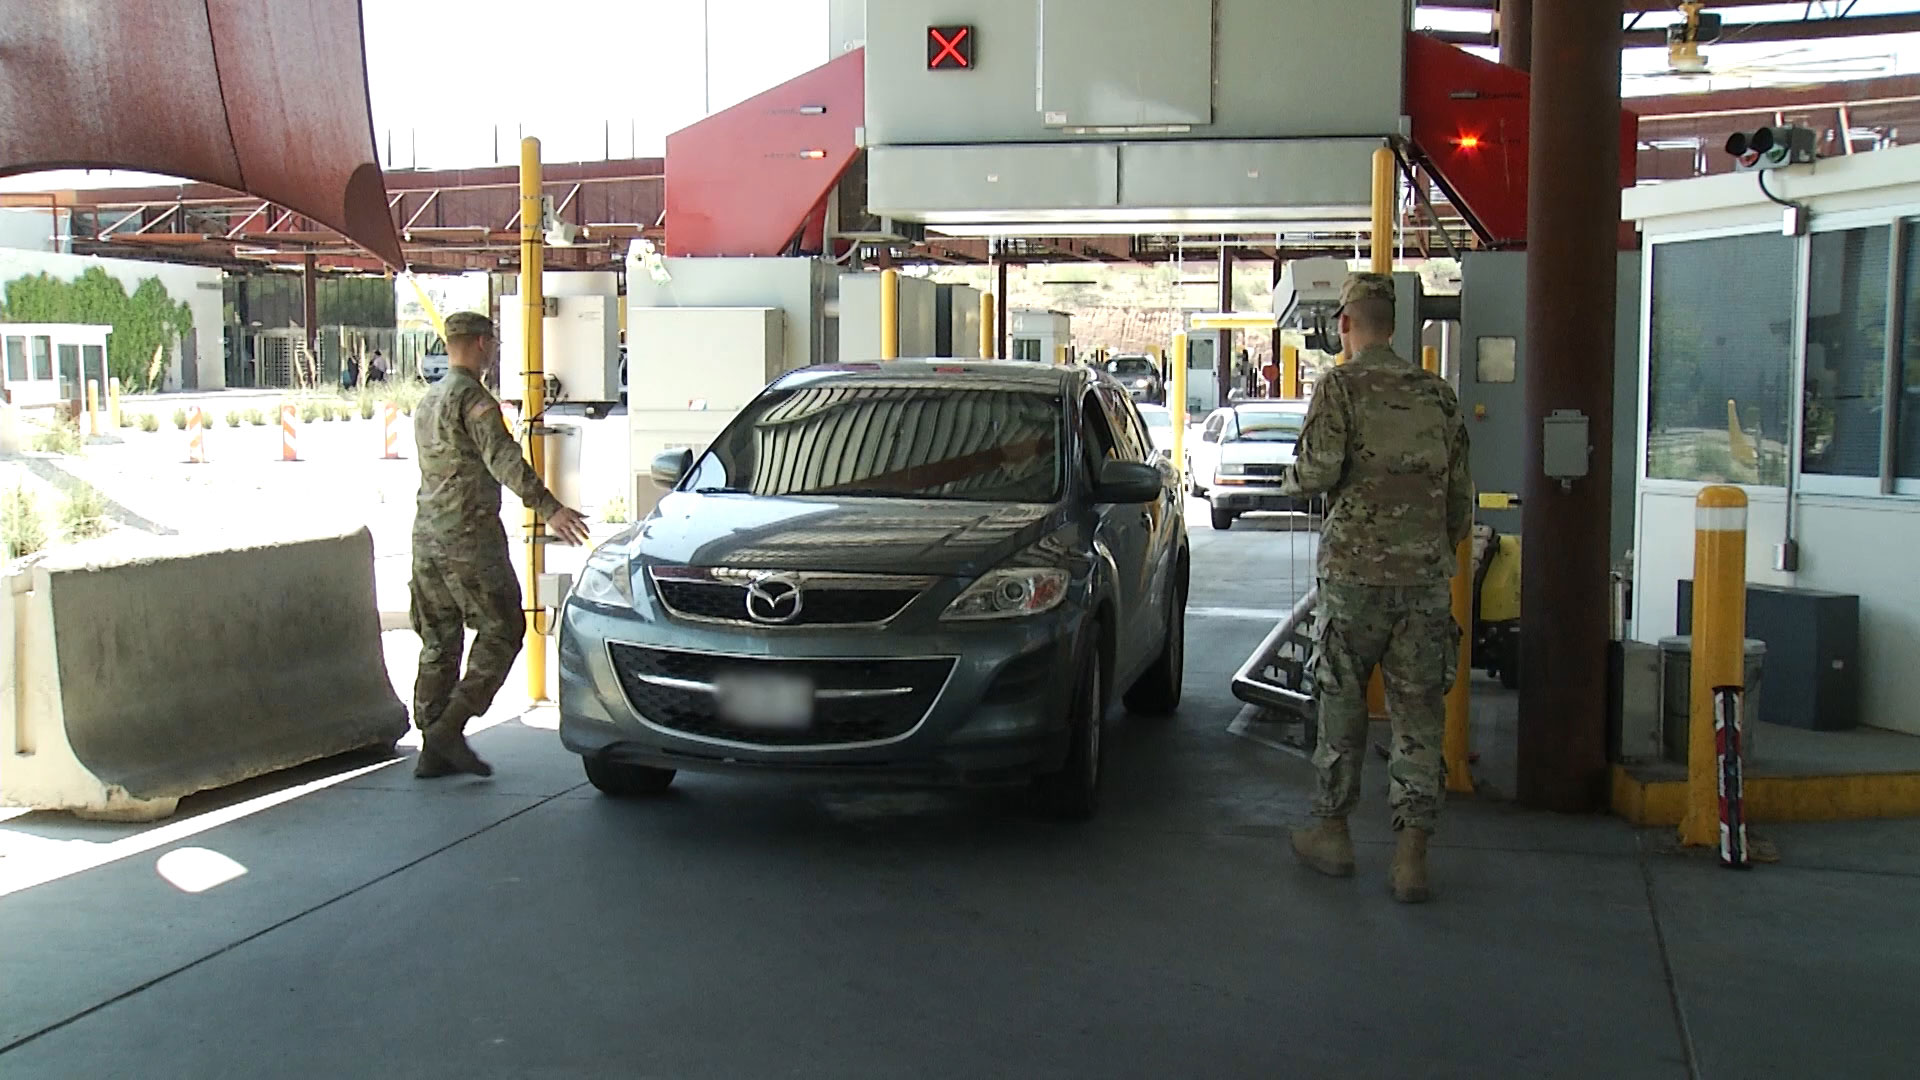 Members of the National Guard assist customs officers at the Mariposa Port of Entry in Nogales as part of their deployment to border states.